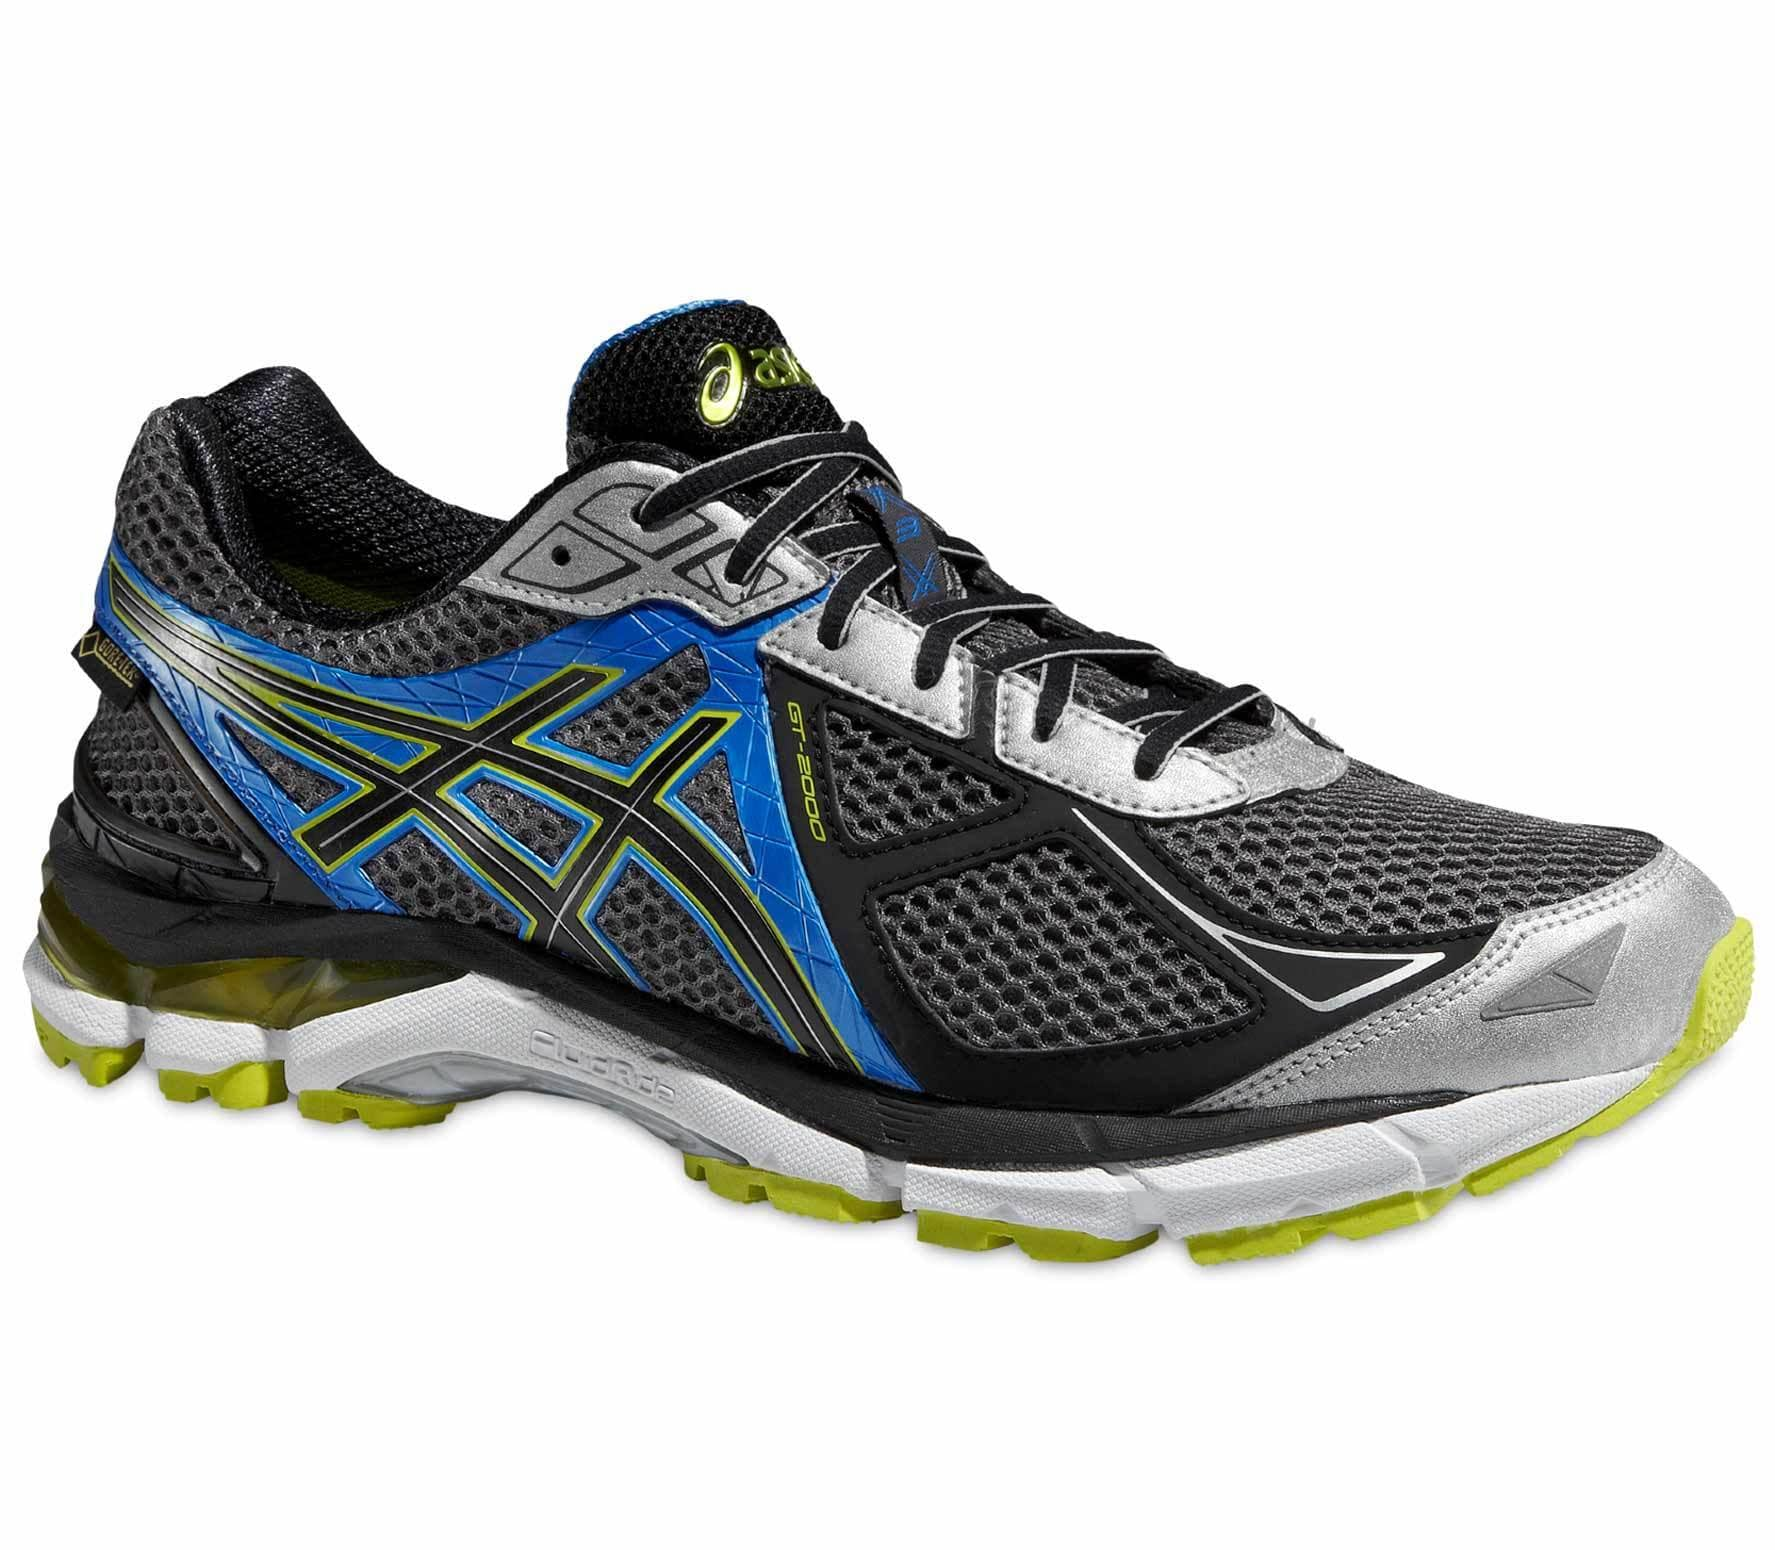 ASICS GT 2000 3 GTX men's running shoe Herren